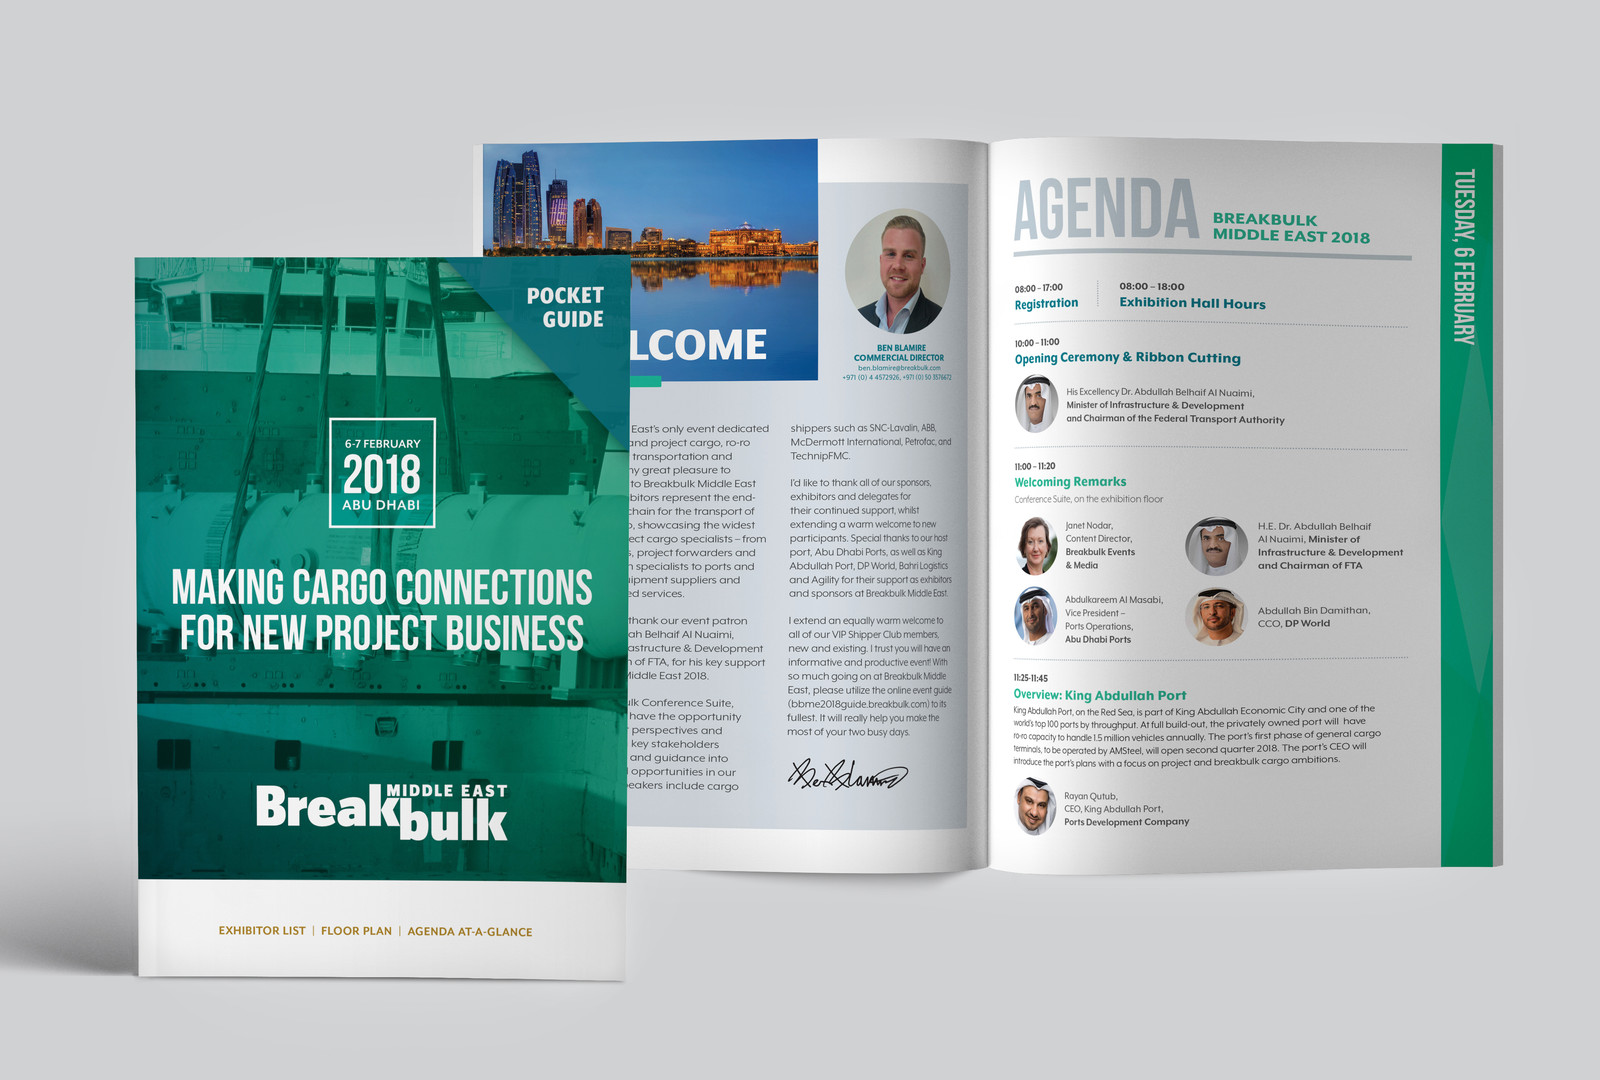 Breakbulk Middle East Pocket Guide